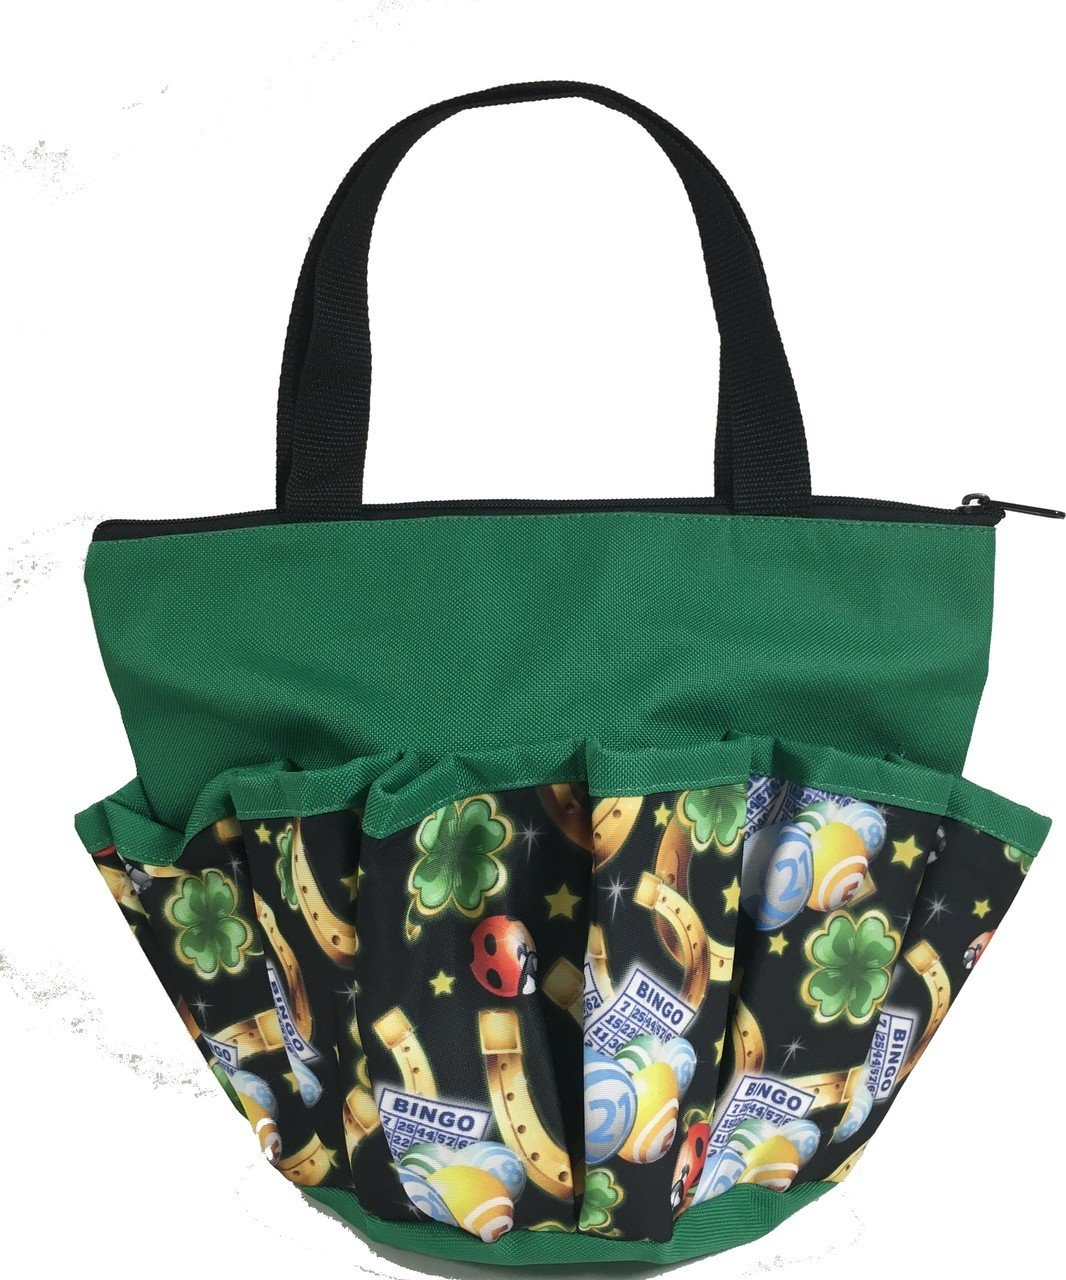 10 Pocket Lucky Charms Green Zipper Bingo Bag by United Novelty (Image #1)